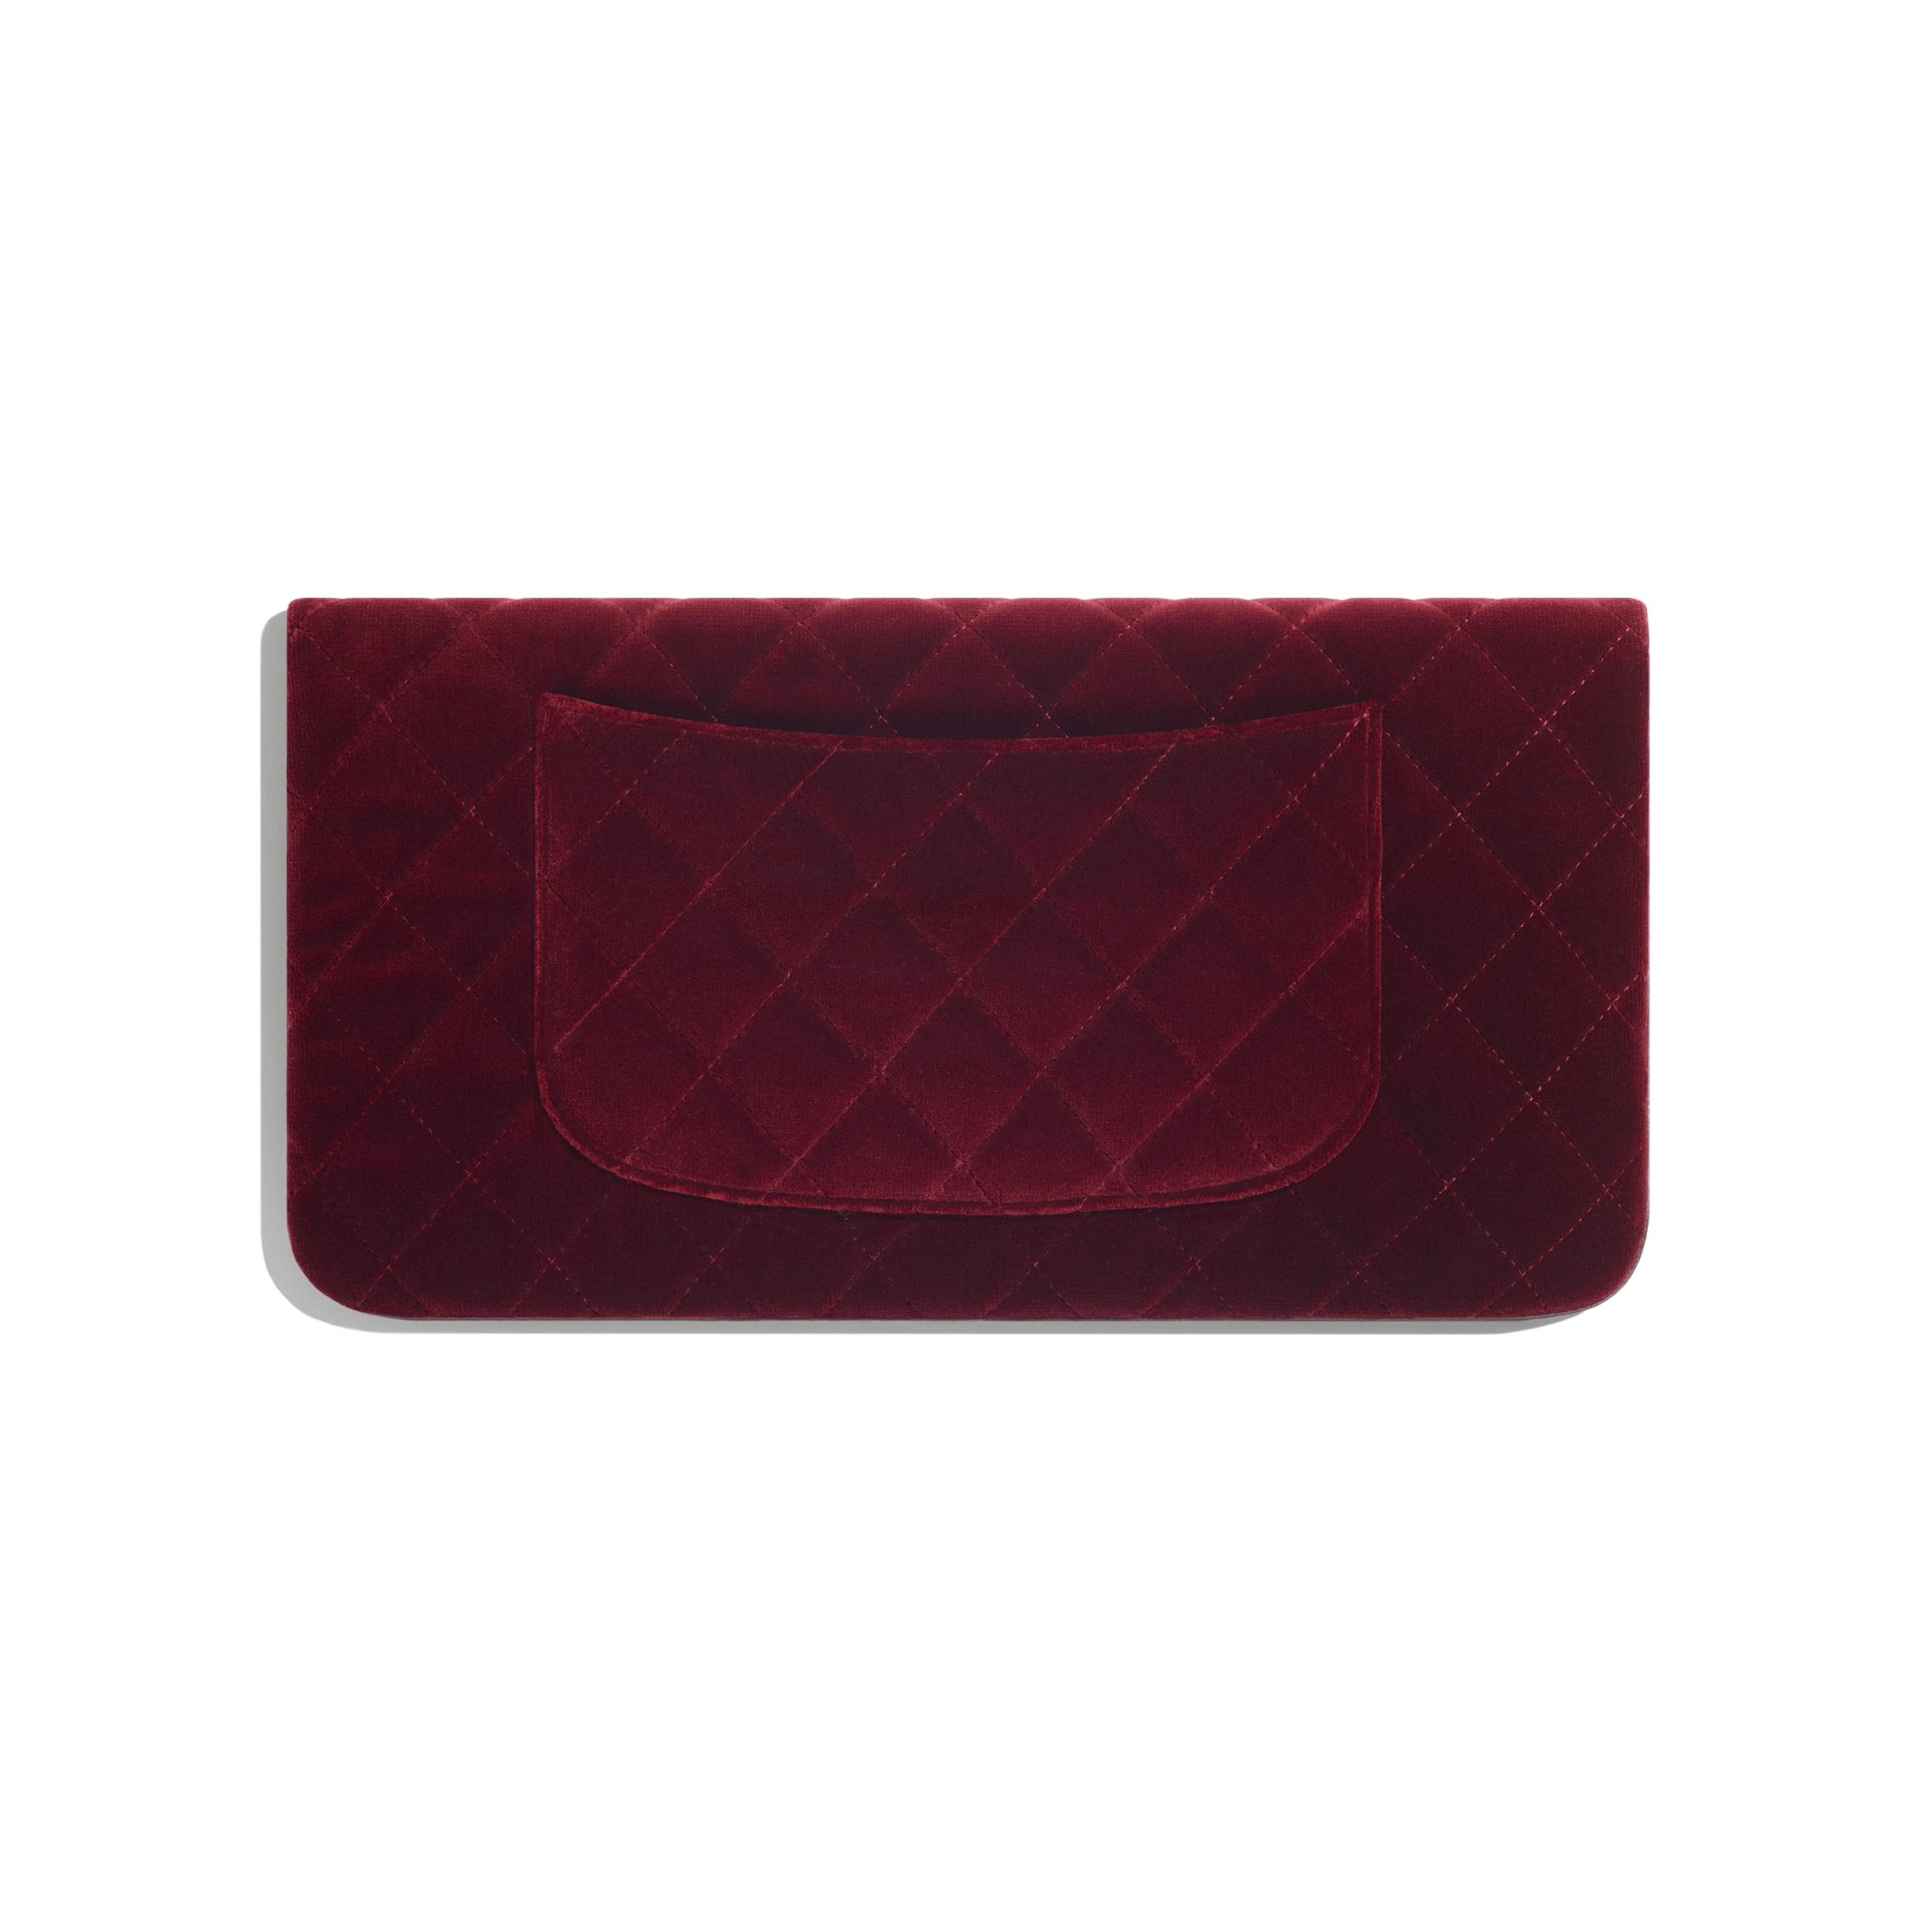 CHANEL 31 Pouch - Burgundy - Velvet, Lambskin & Gold-Tone Metal - Alternative view - see standard sized version